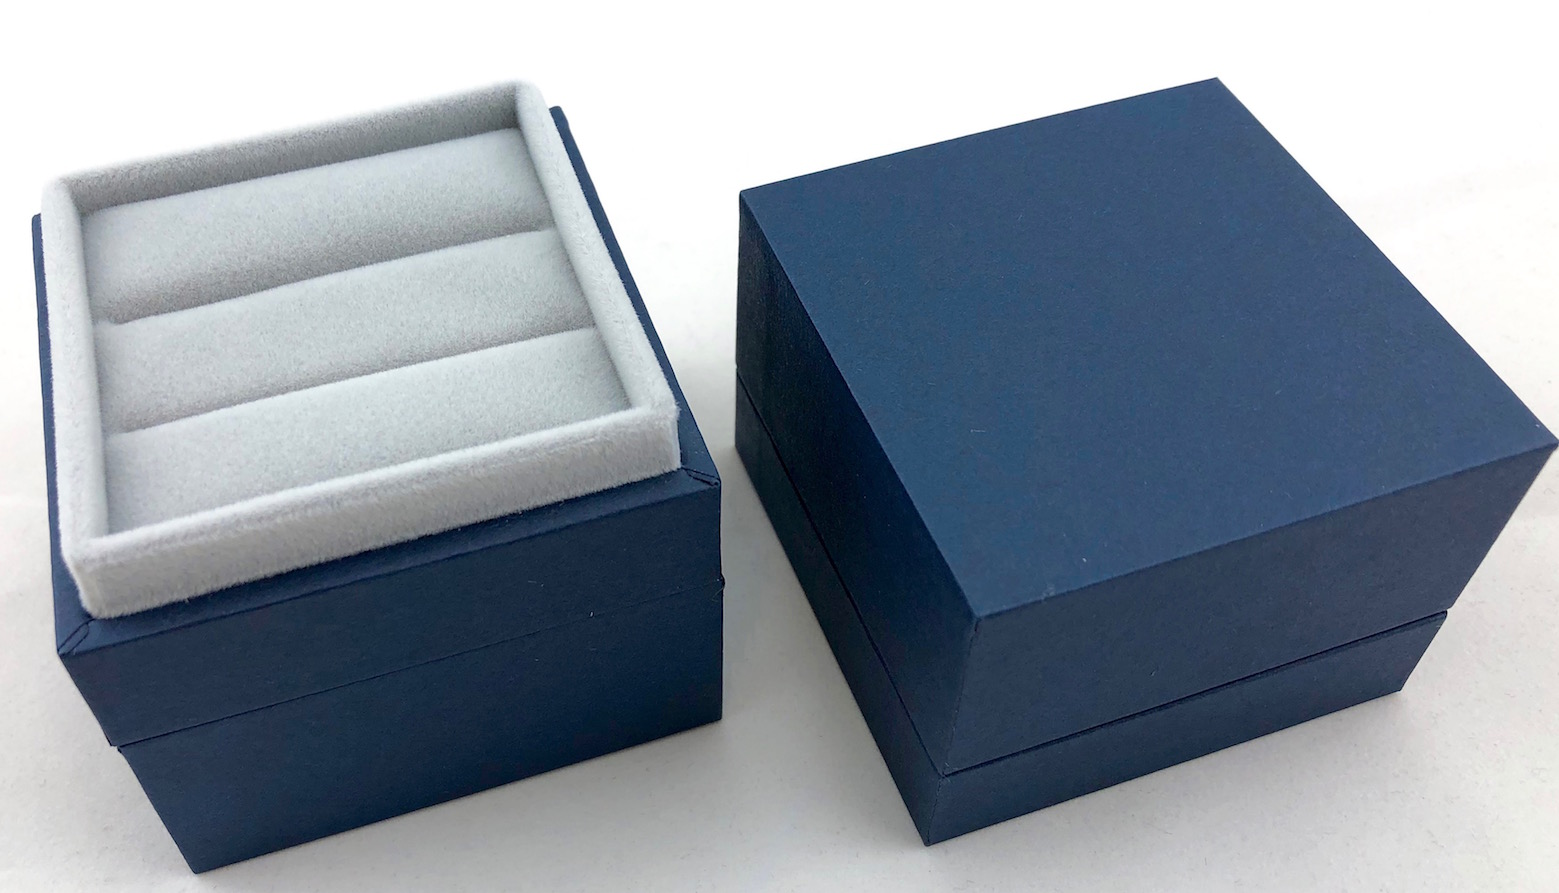 New Blue Envy Double Ring Box - open